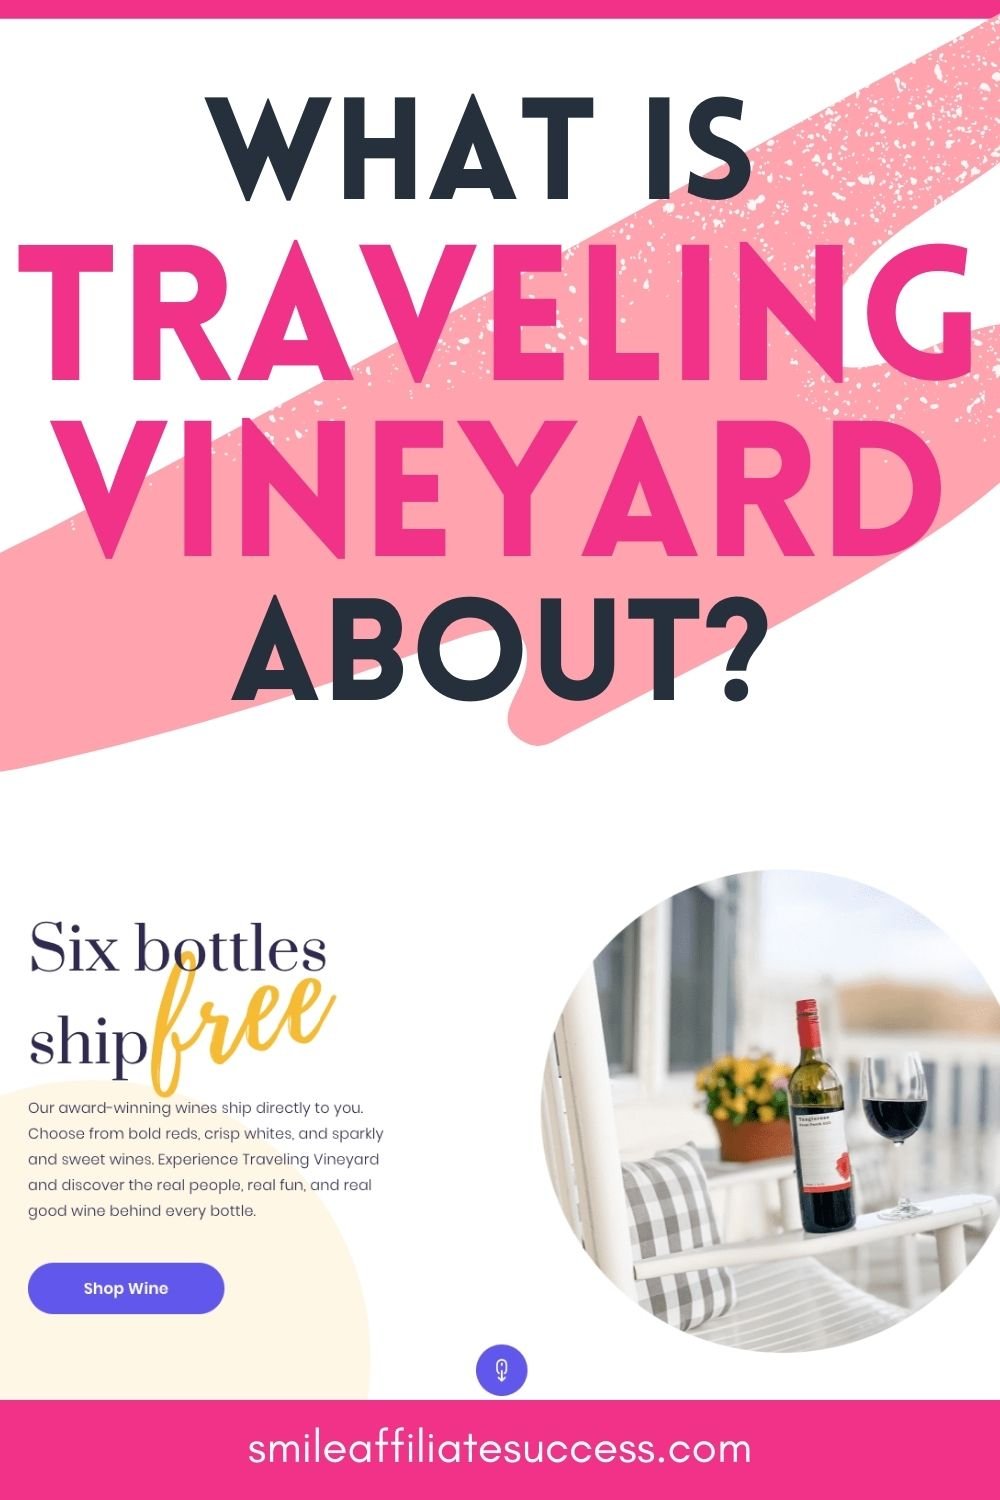 What Is Traveling Vineyard About?